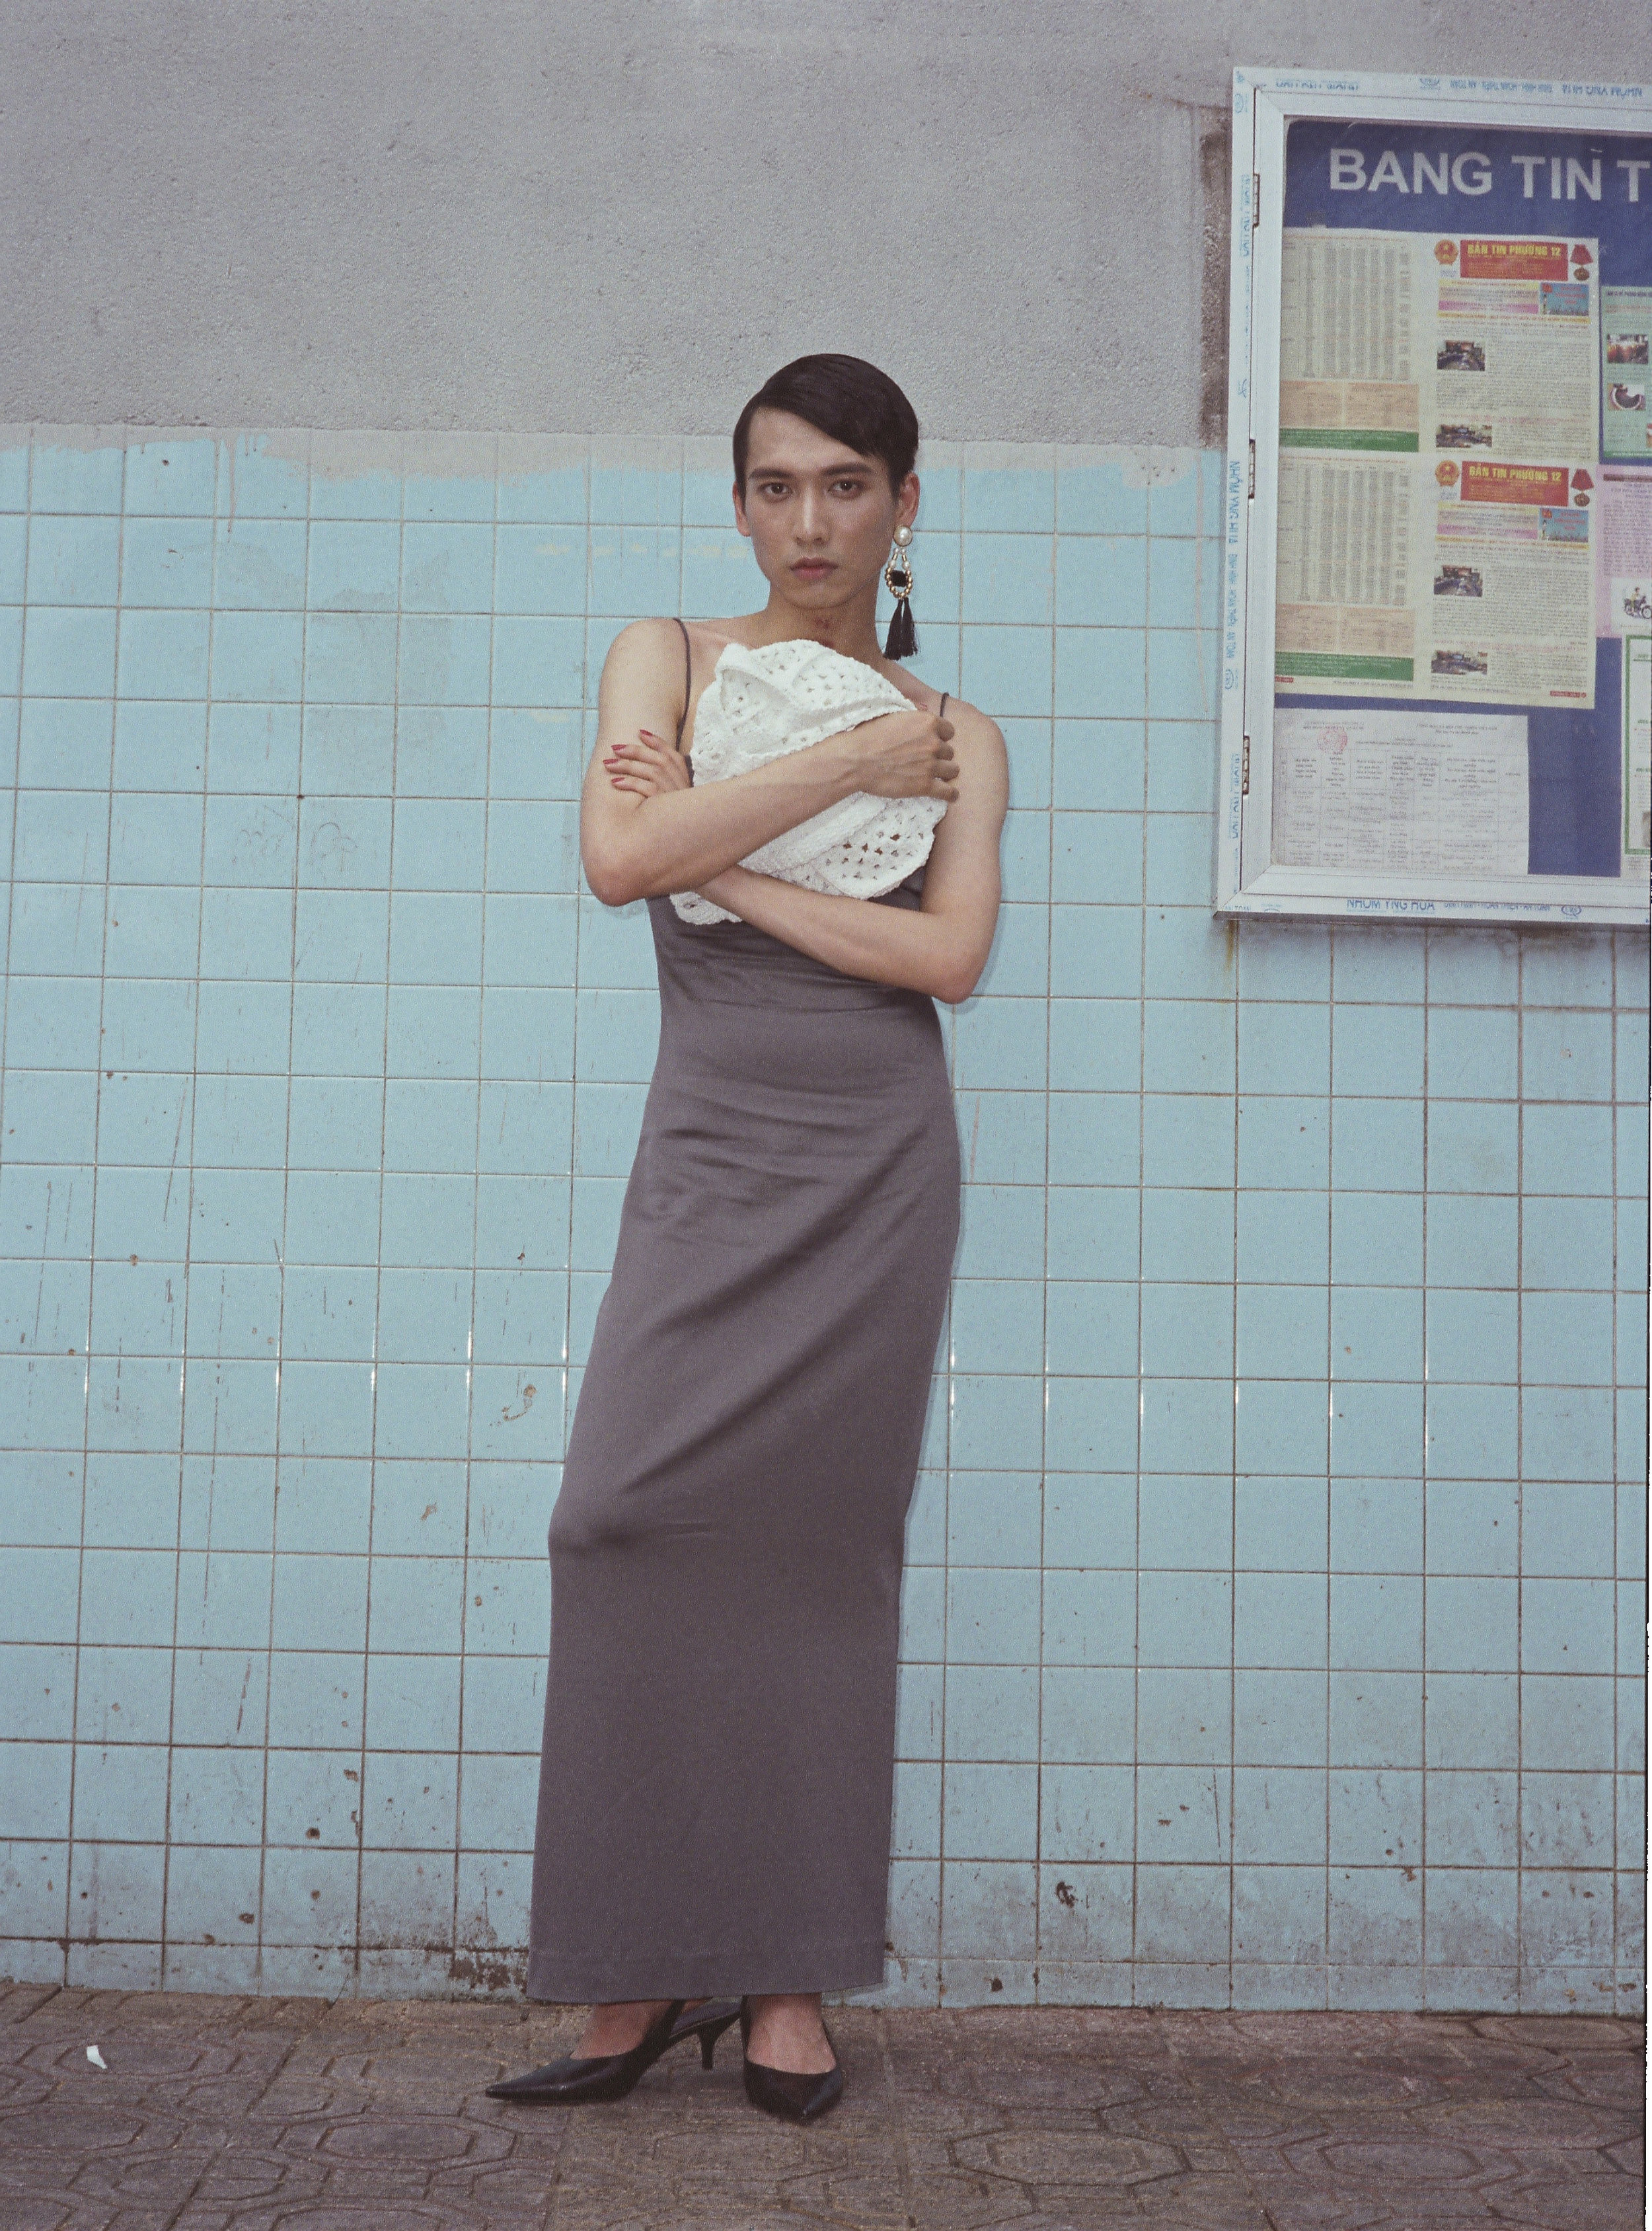 professional film analog fashion photography in ho chi minh city vietnam singapore by thatsluminous 120mm medium format sans official